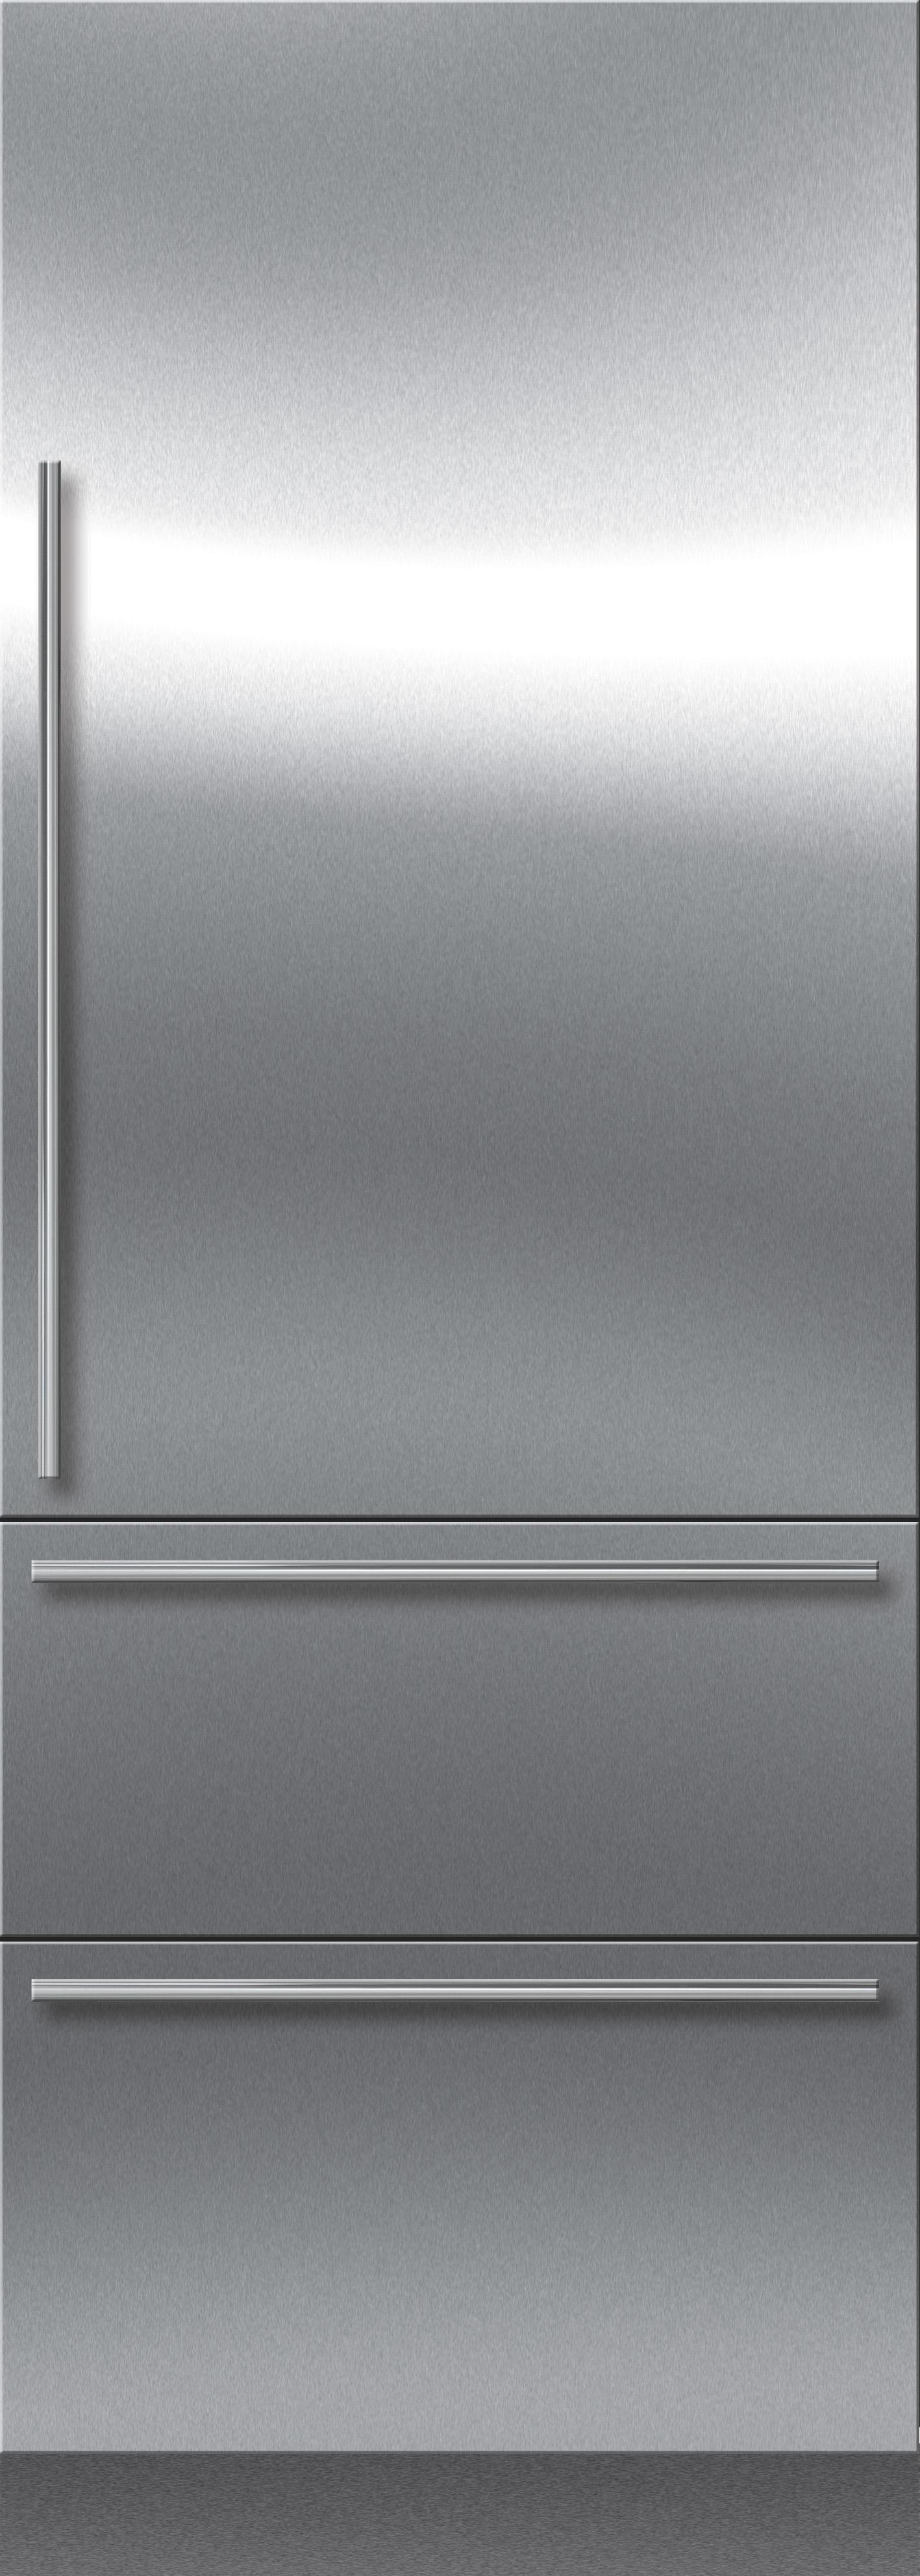 "Integrated Refrigeration 36"" Refrigerator/Freezer by Sub-Zero at Furniture and ApplianceMart"